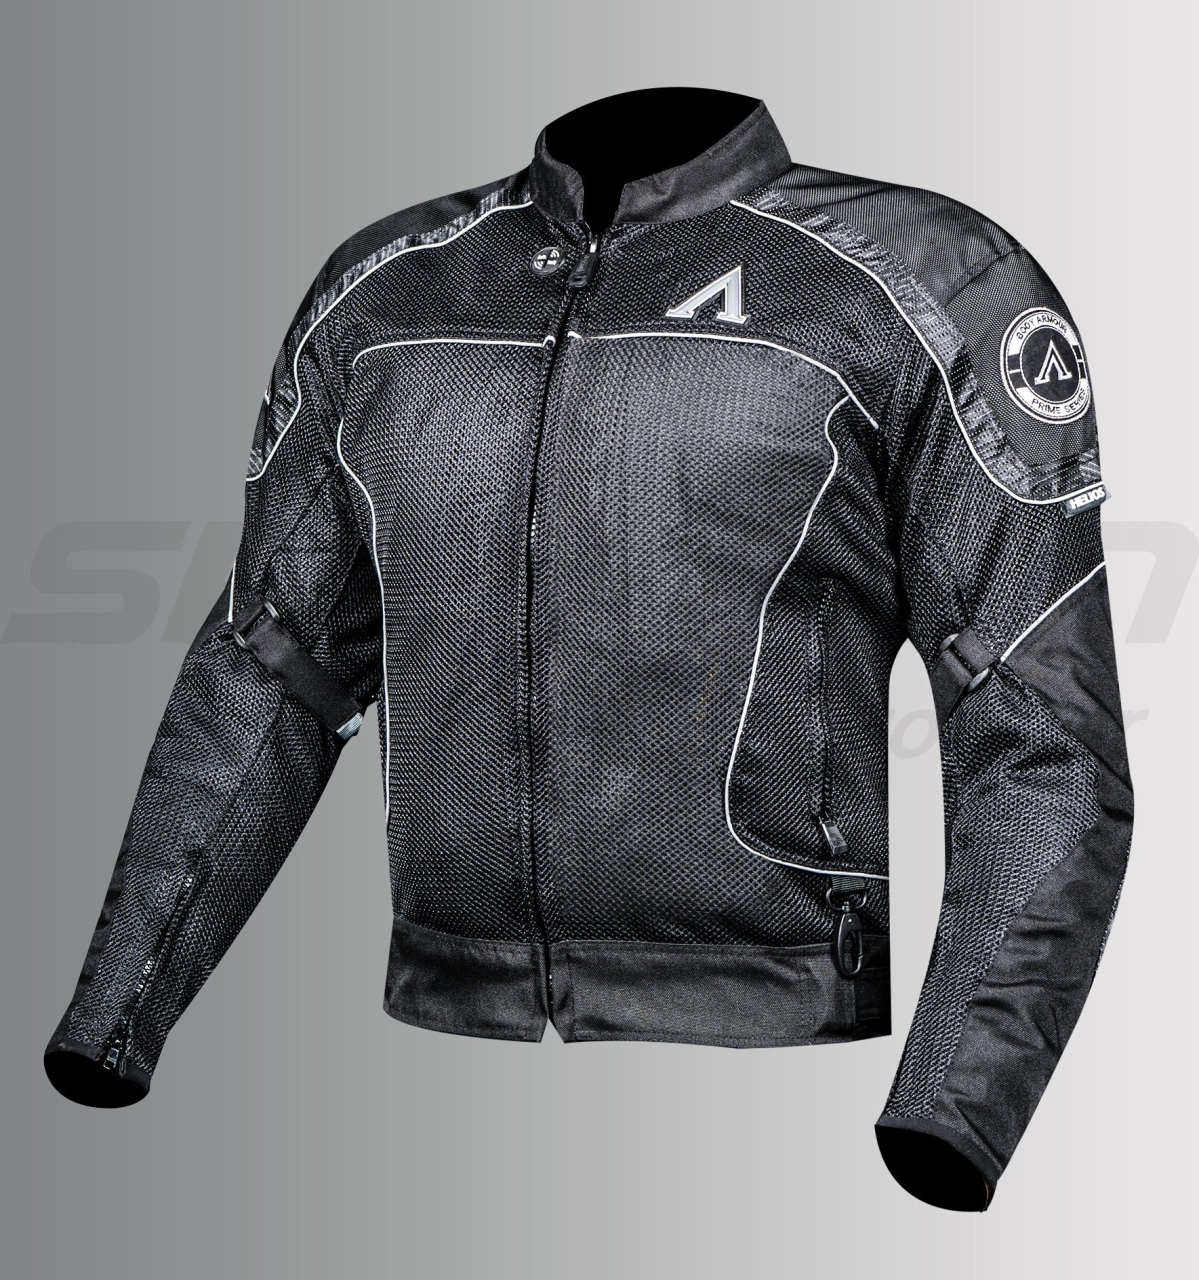 Motorcycle riding essentials: Aspida Helios Classic Air Mesh Jacket